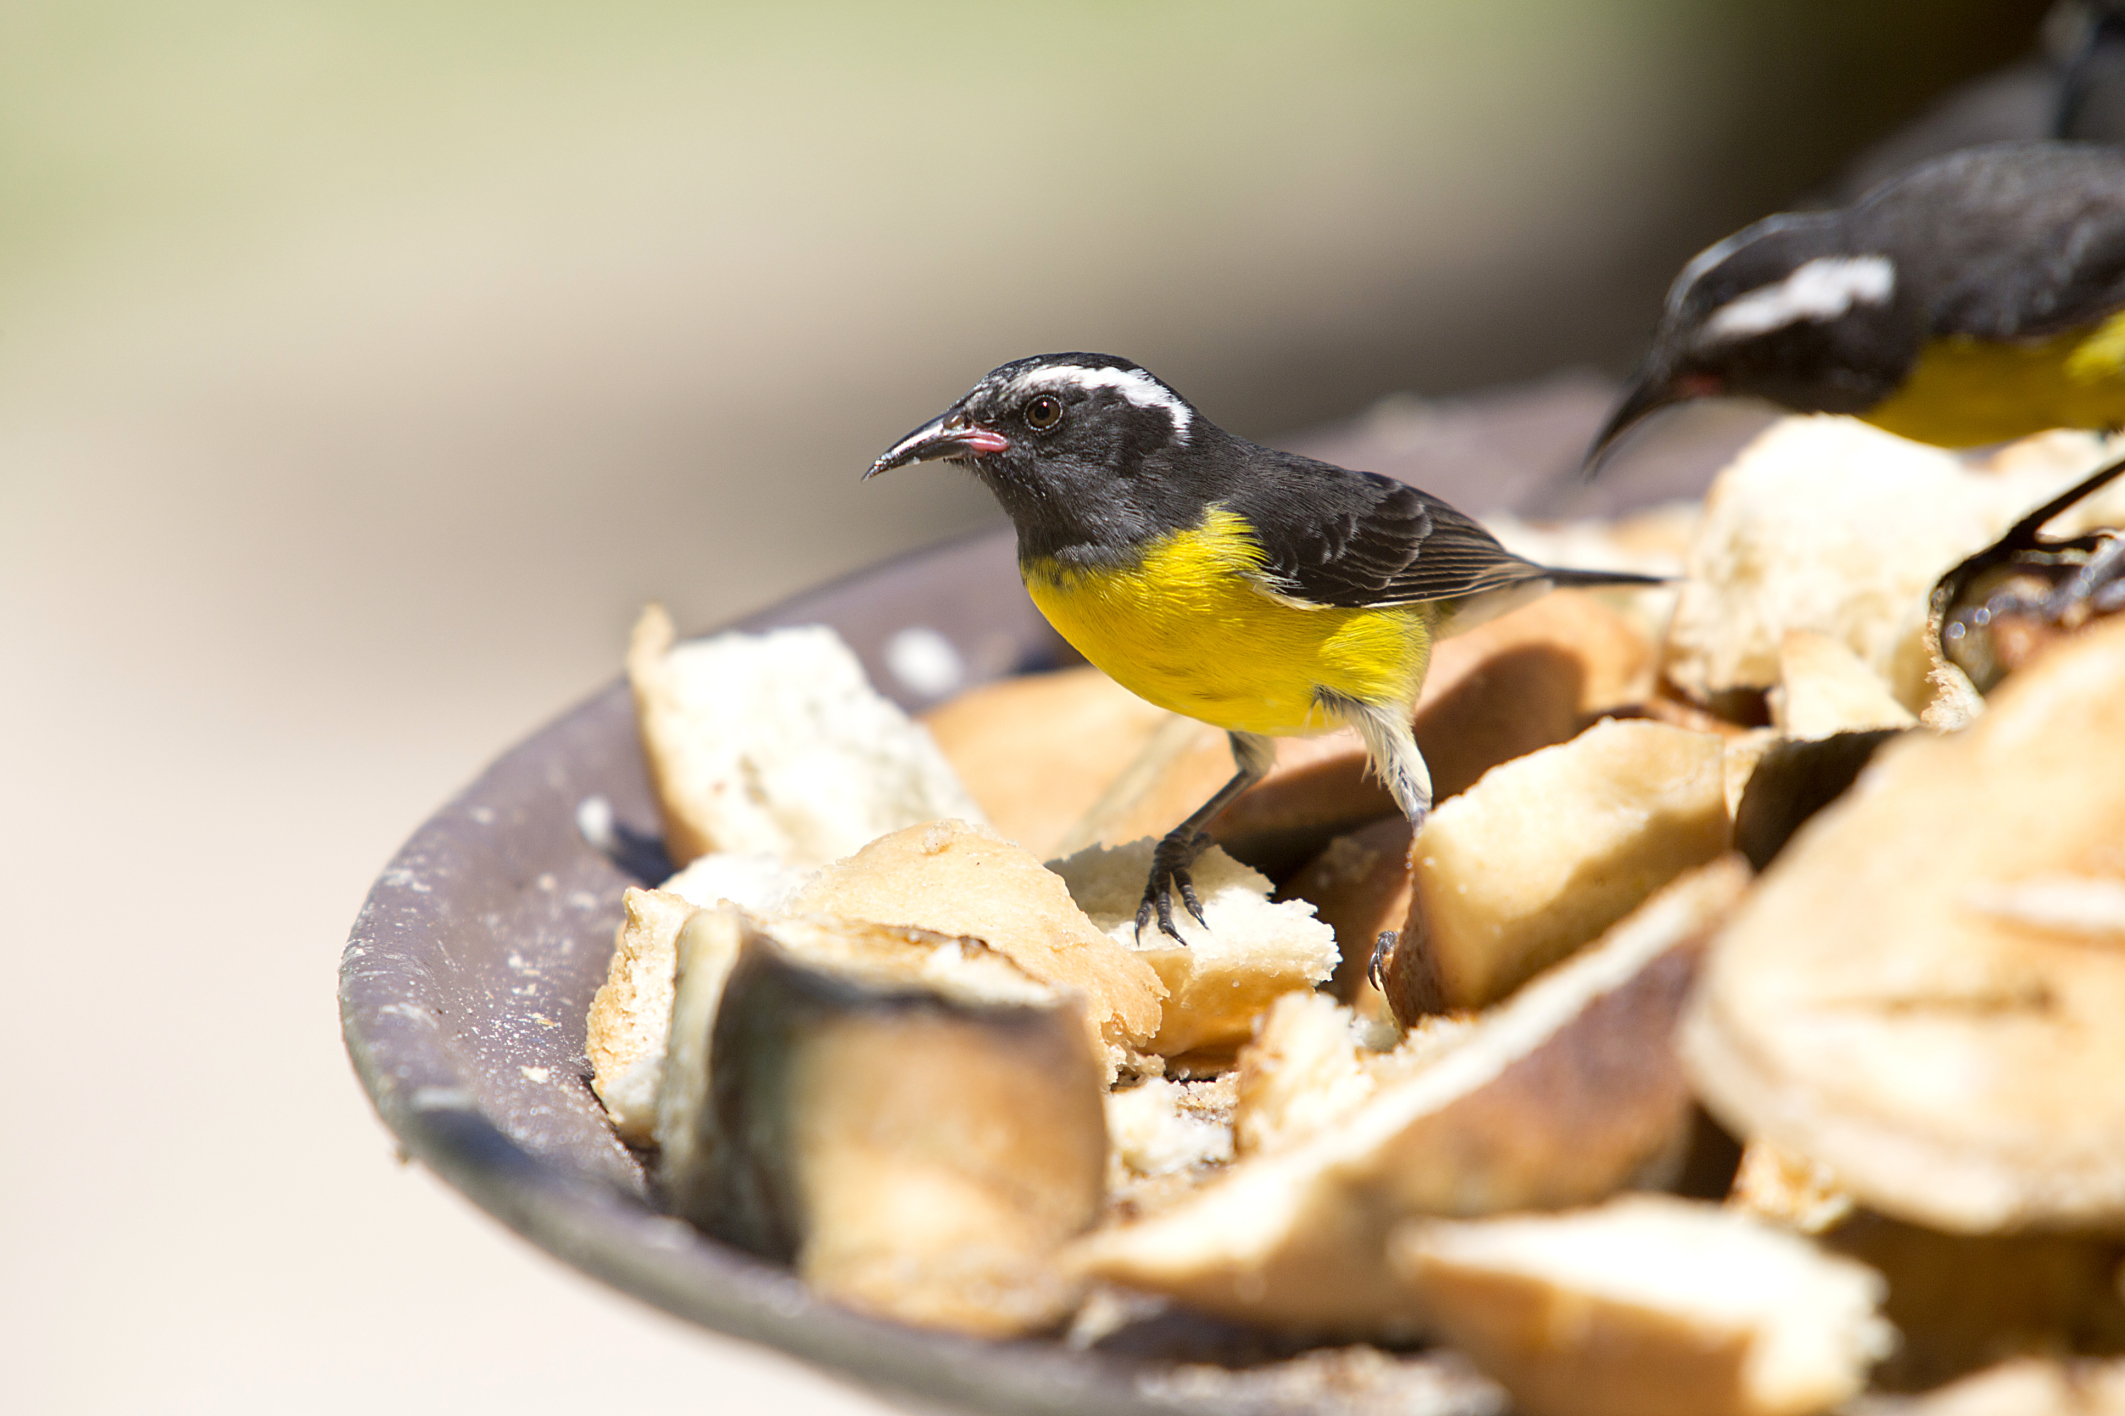 The bananaquit bird can be found on these twin islands